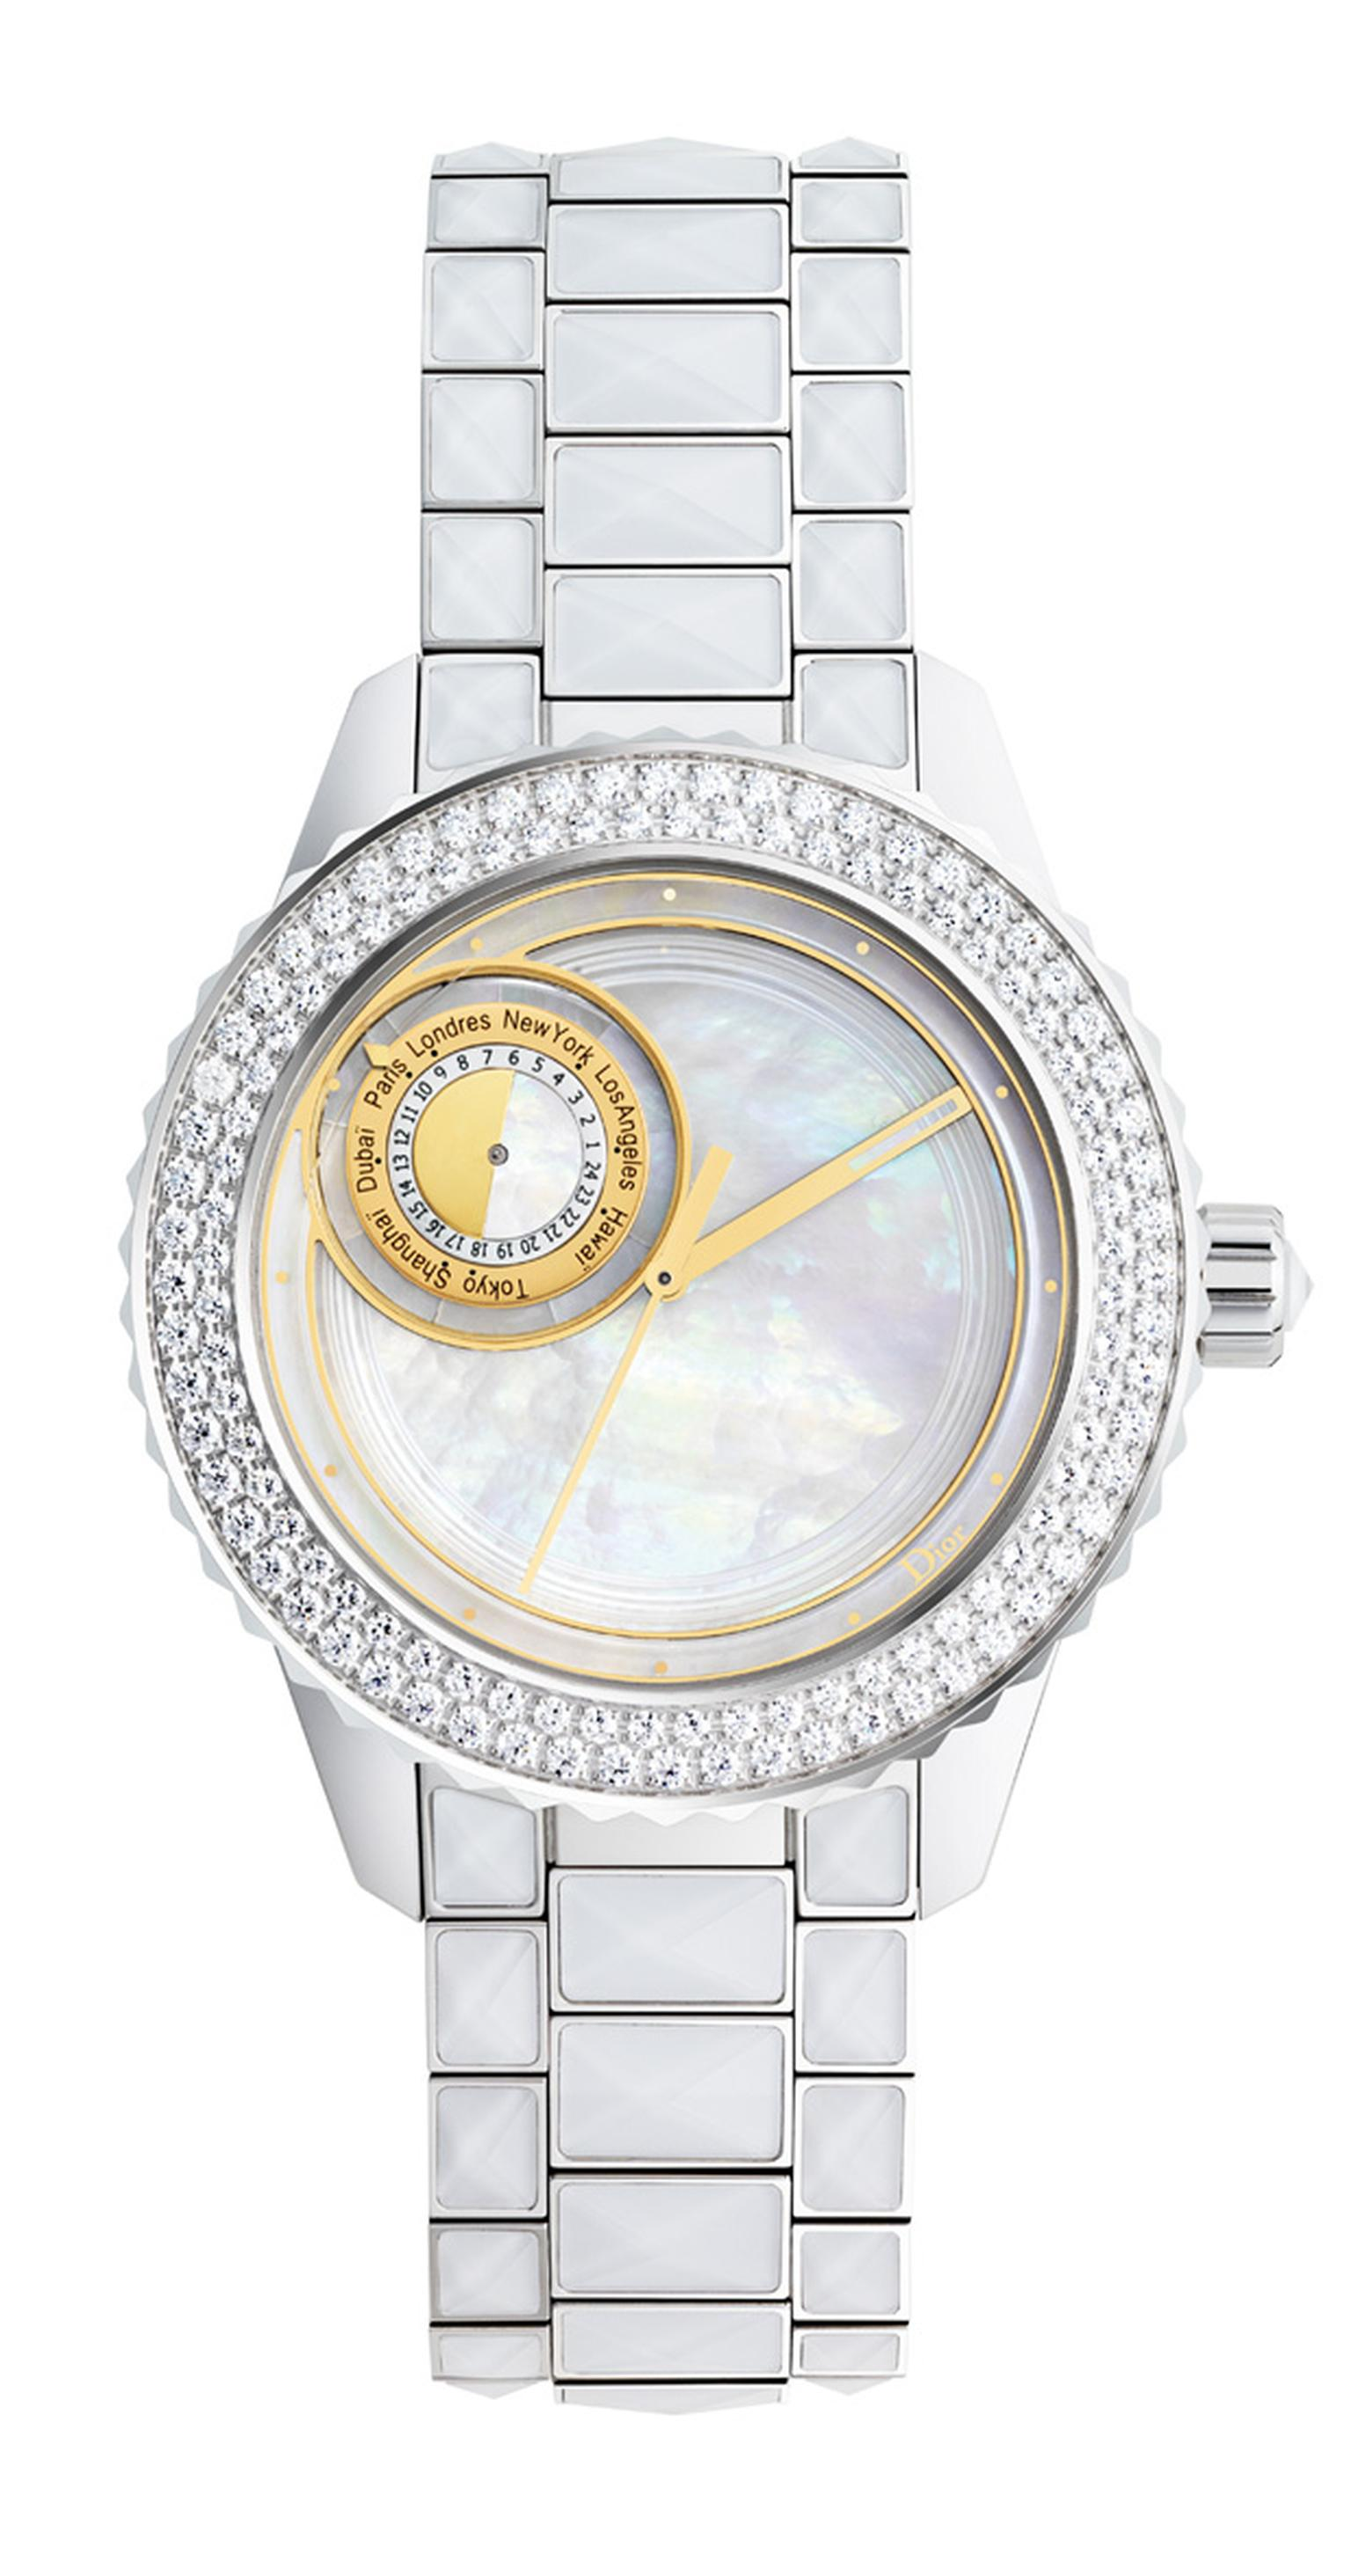 Dior Christal 8 watch with mother of pearl dial